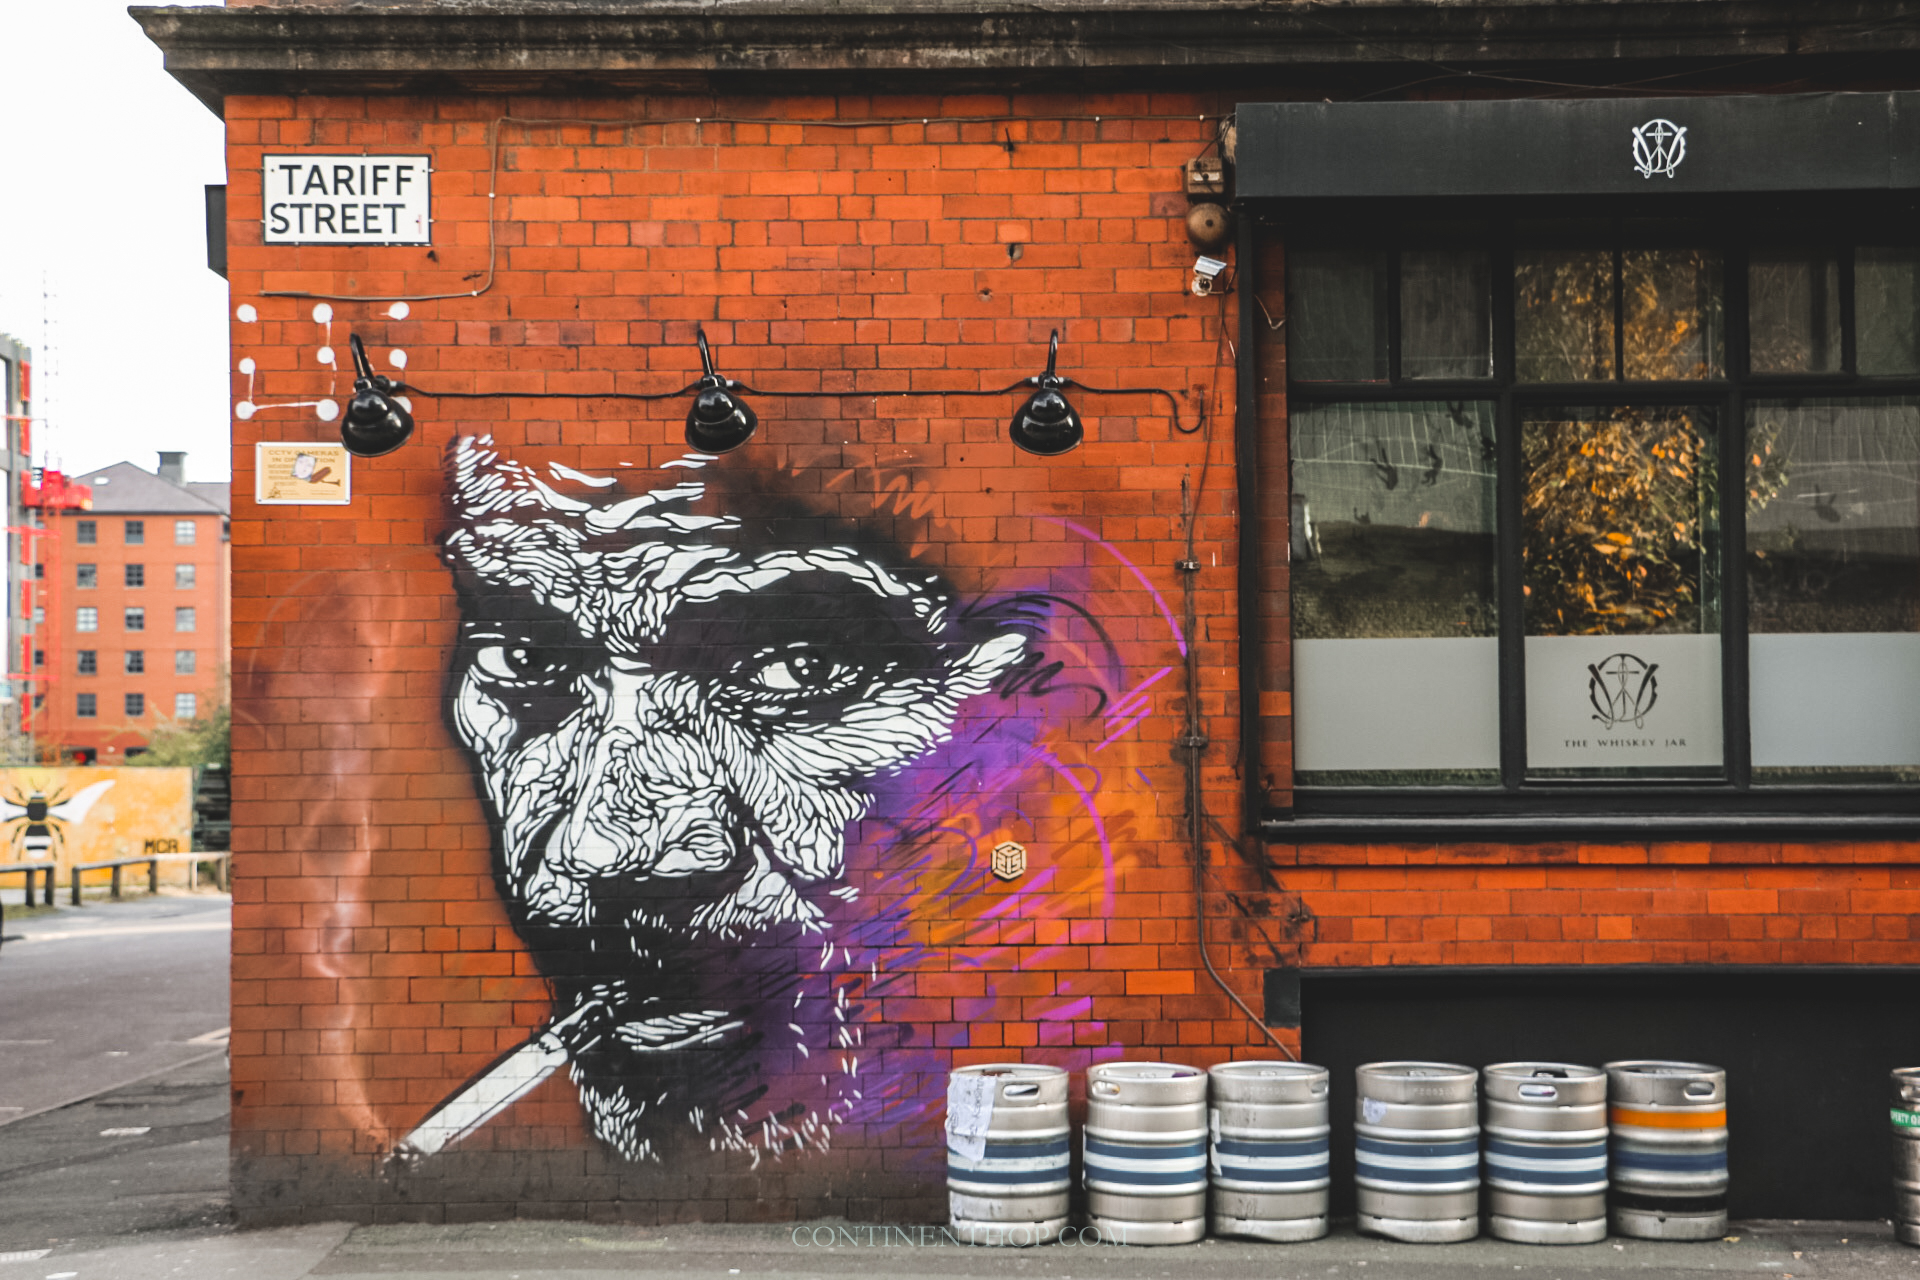 street art in manchester attractions travel guide